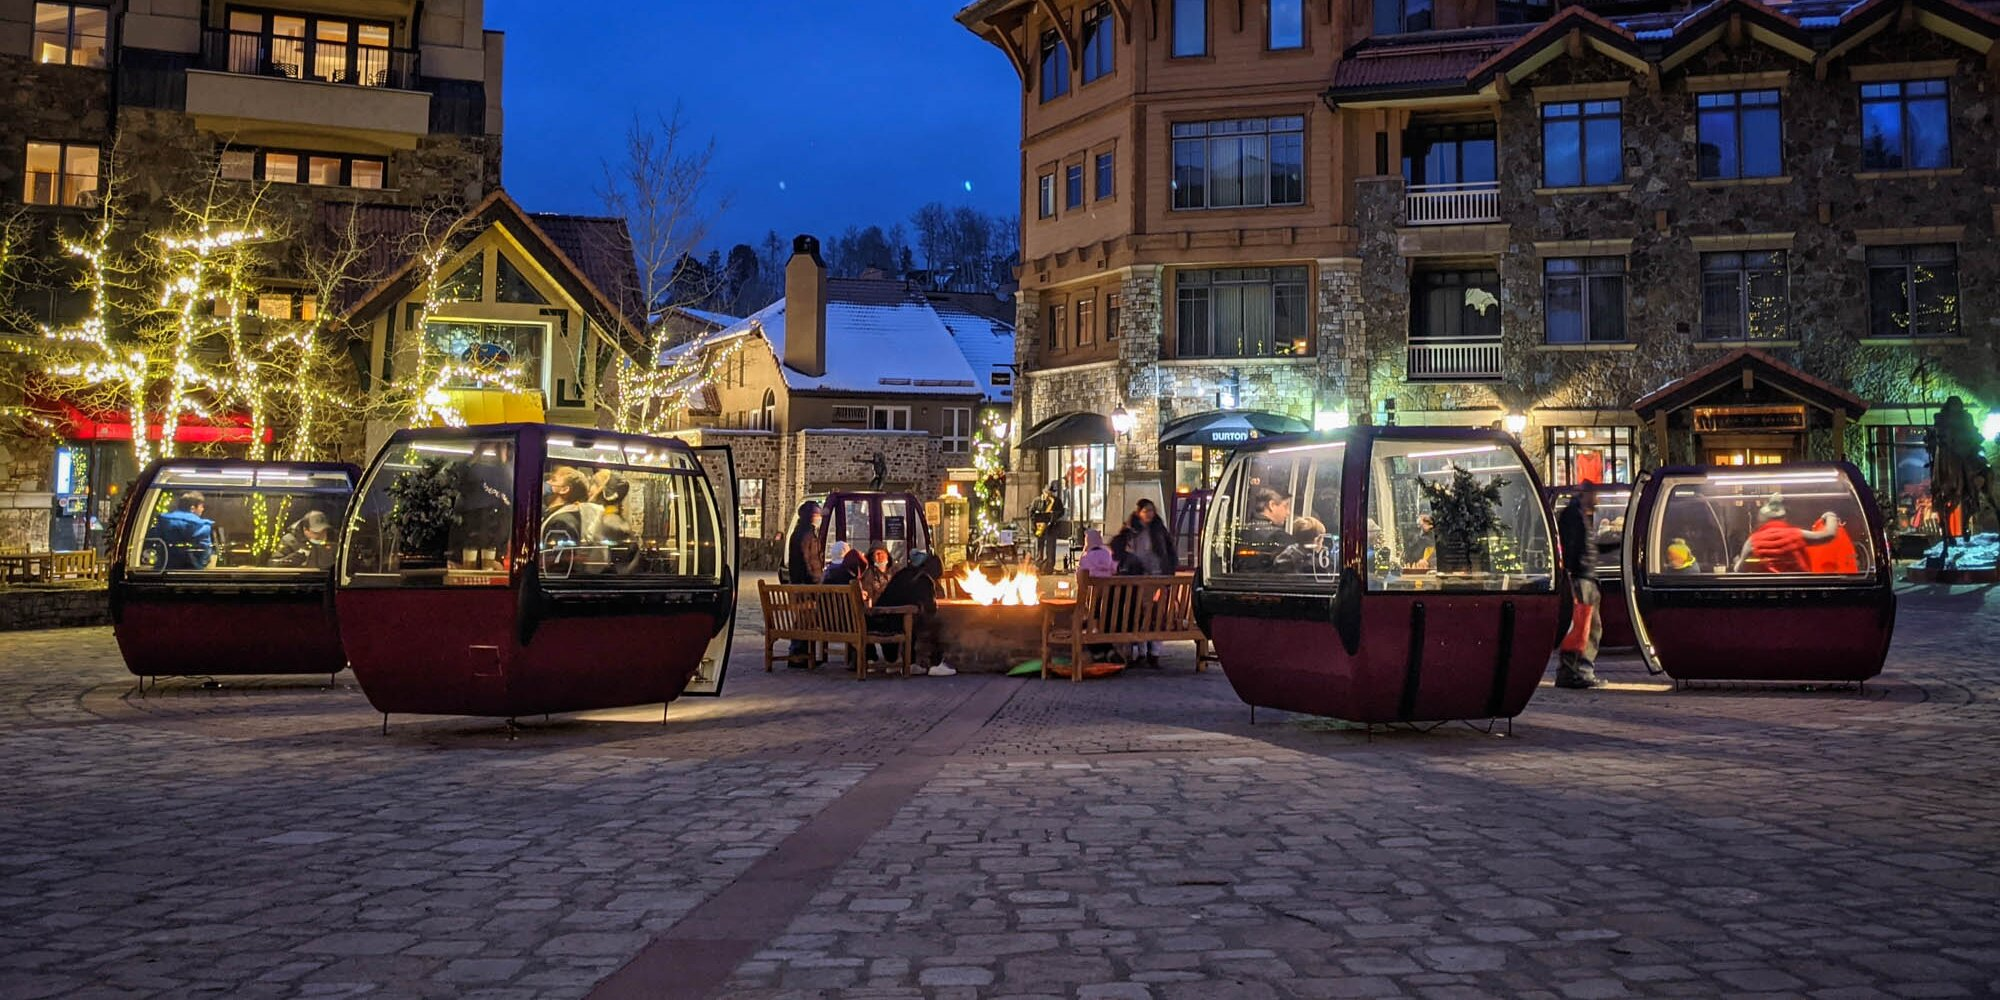 Old Ski Gondolas Find New Life as Private Dining Rooms